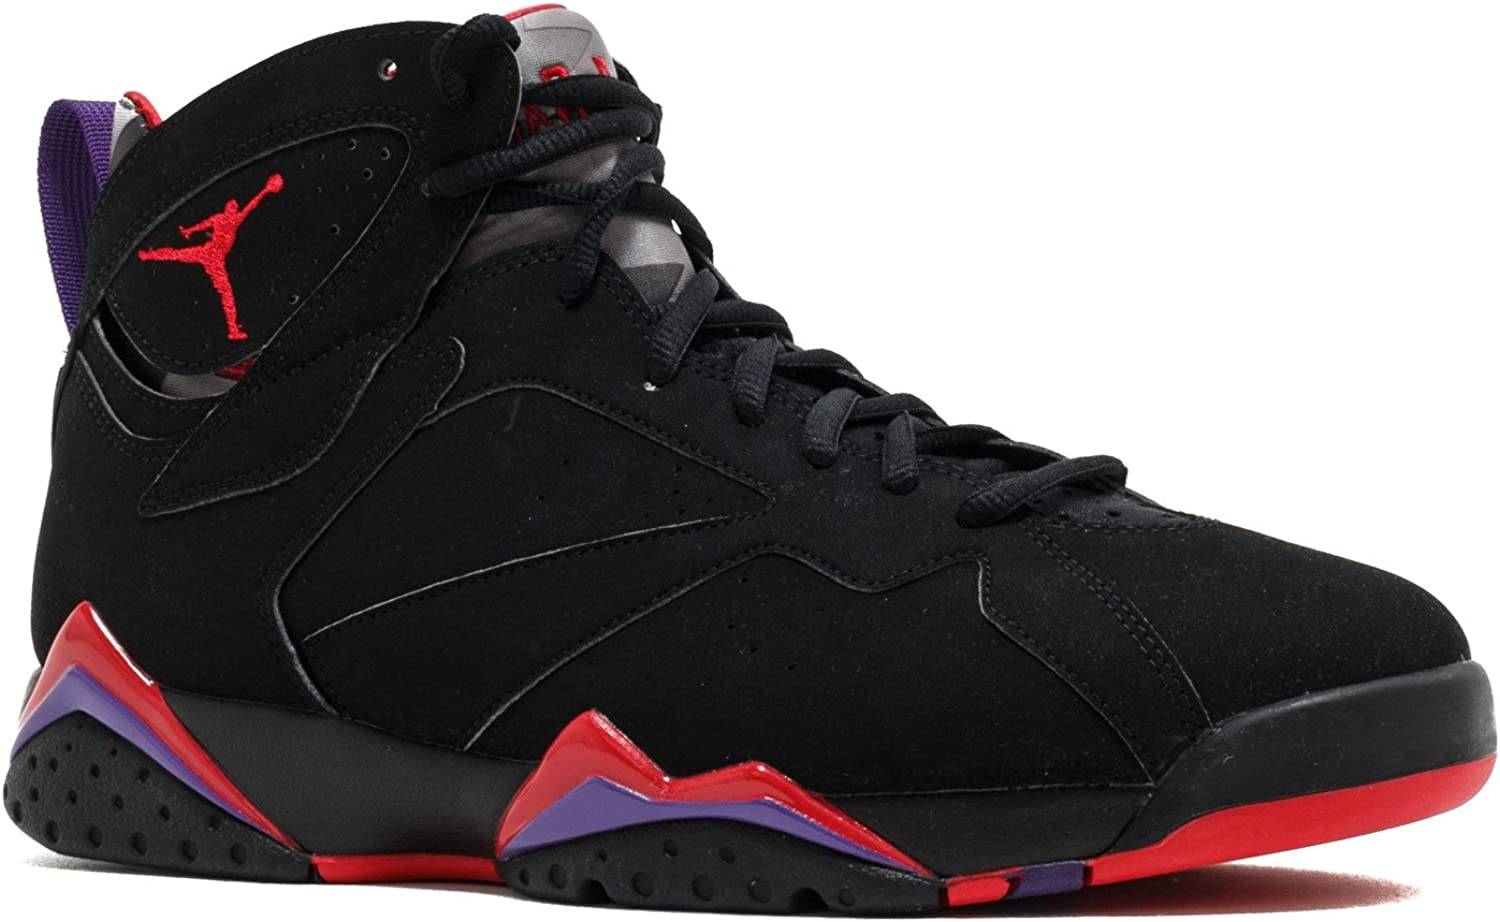 online store details for presenting Amazon.com | Jordan Air 7 VII Retro Raptors Men's Basketball Shoes ...